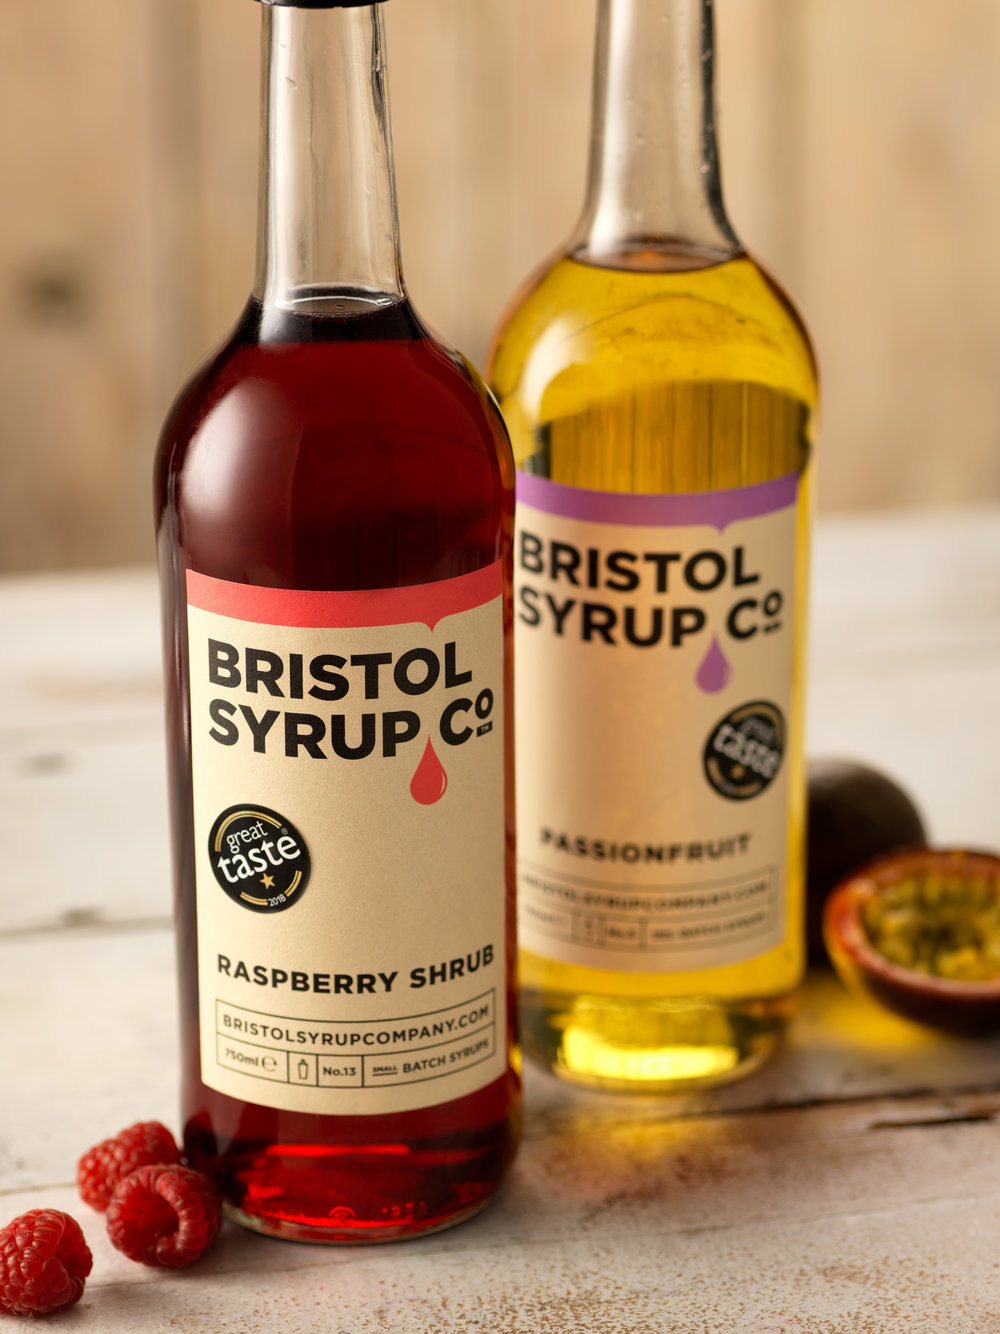 Bristol Syrup Co - Great Taste Bottles